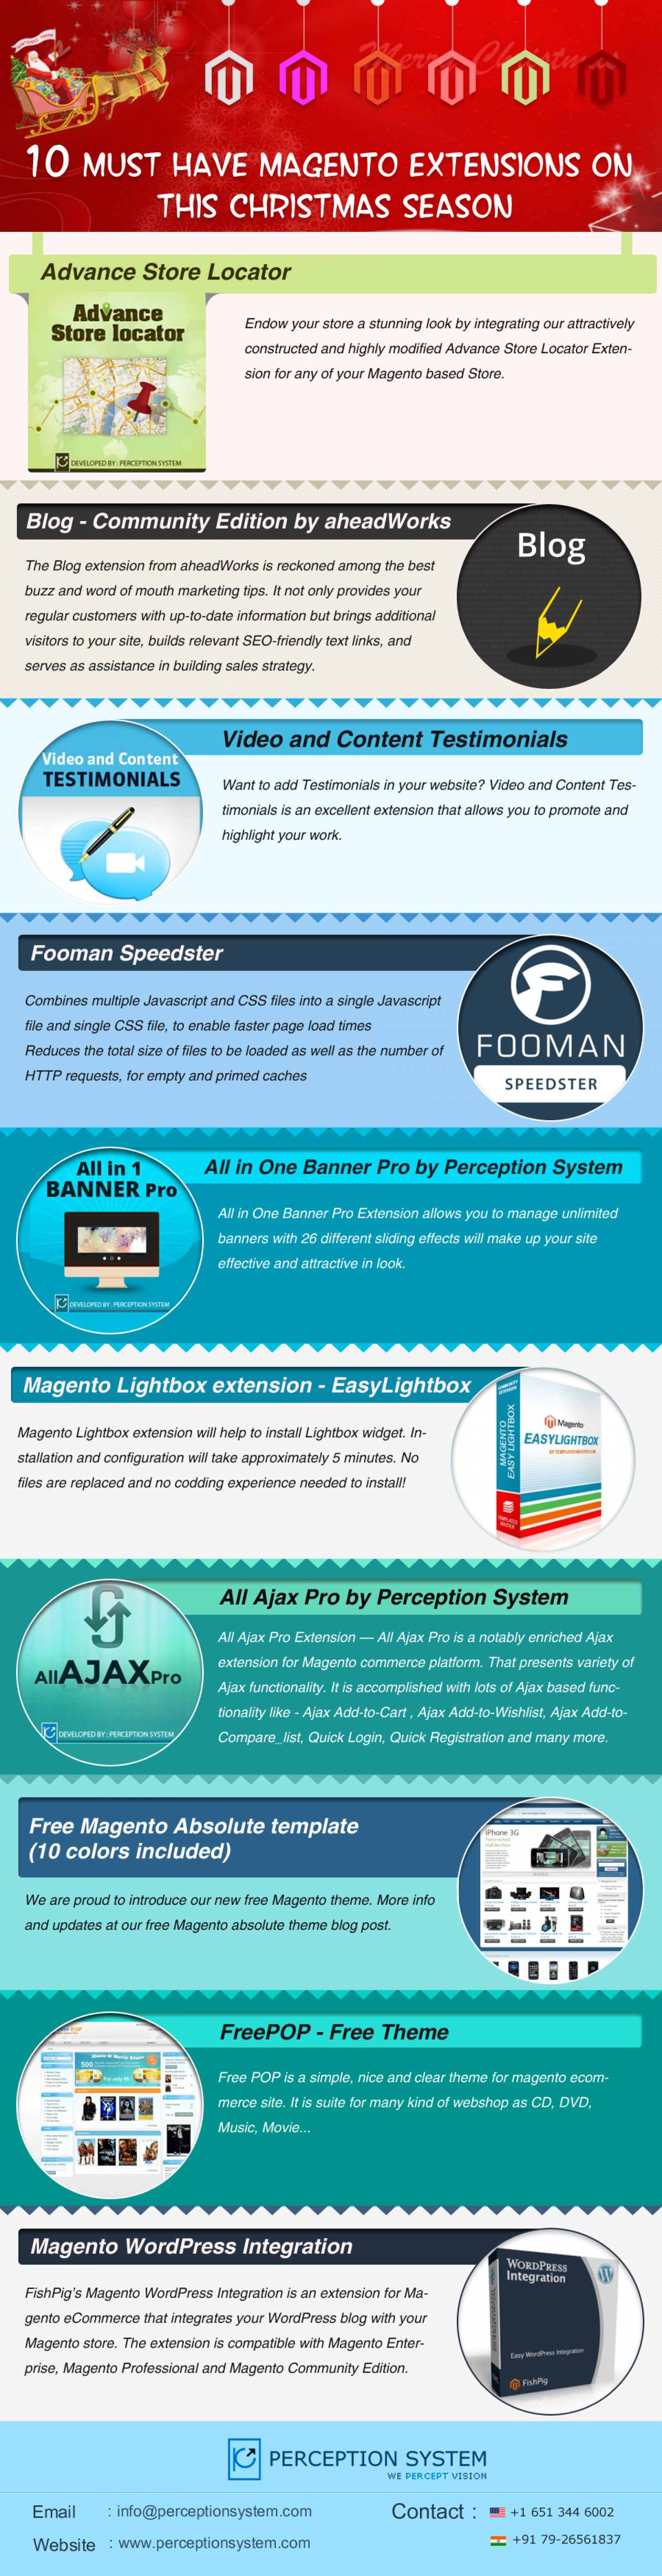 Top 10 Magento Extensions to Must Download On this Christmas Season Infographic